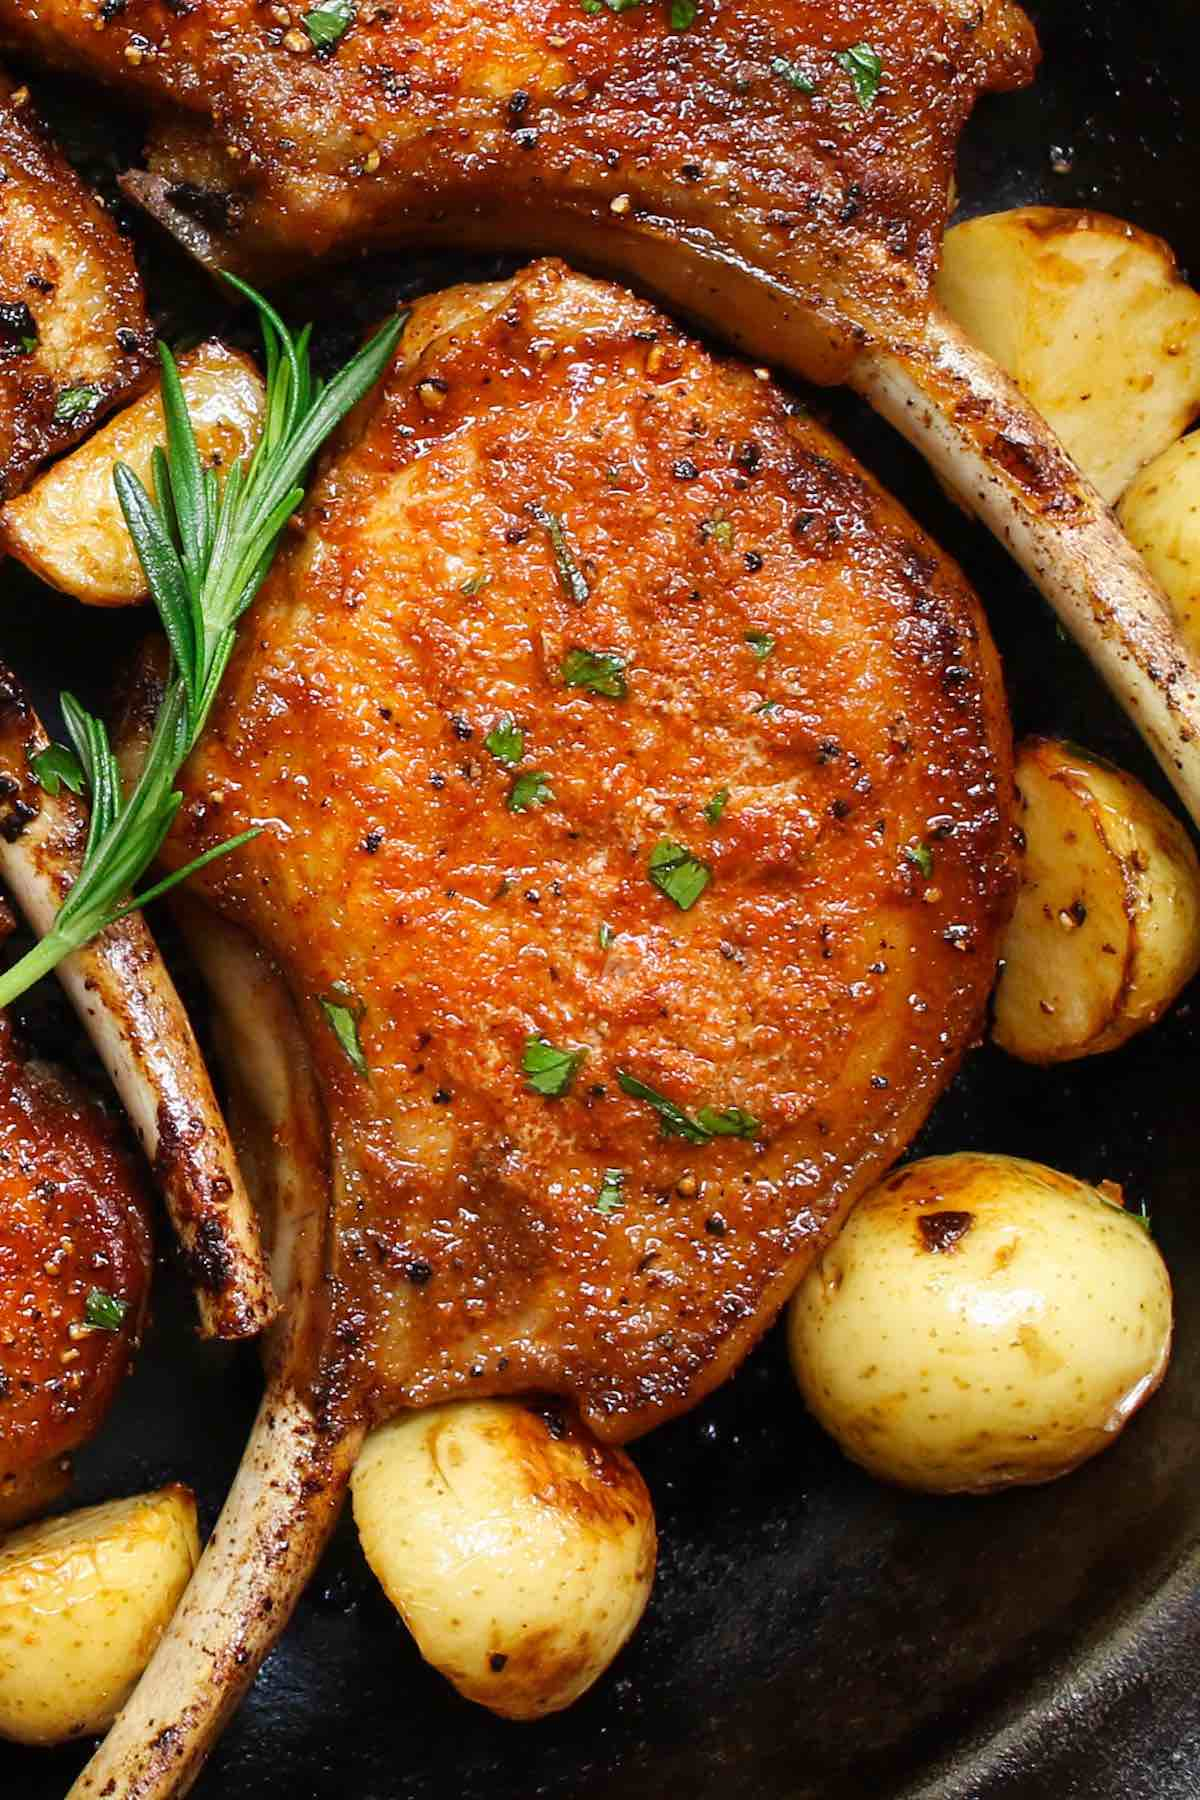 Closeup of stove top pork chops with a perfect golden crust and sauteed potatoes on the side